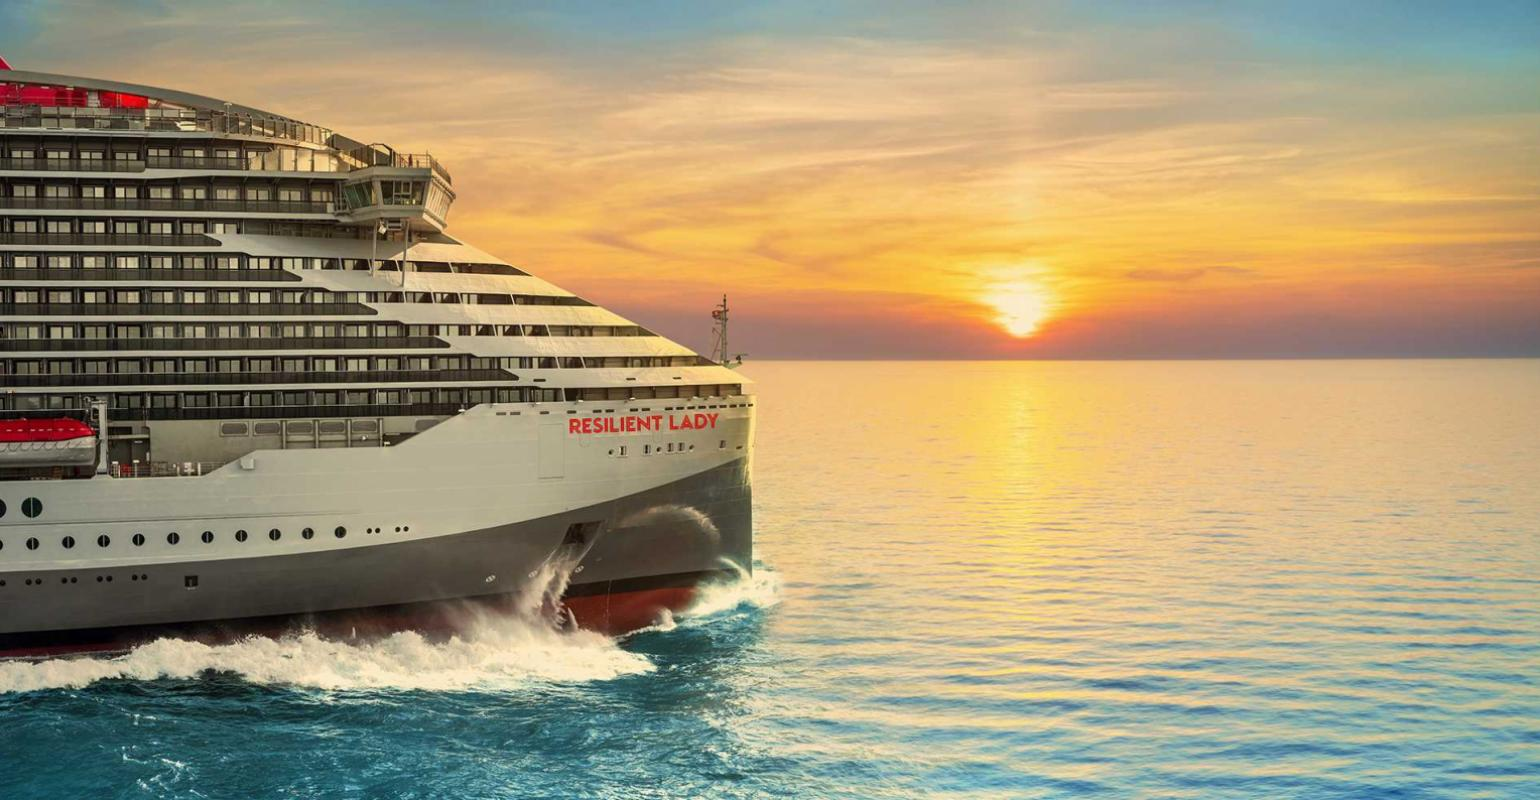 Virgin Voyages Announces Third Ship: Resilient Lady, To Debut From Greece